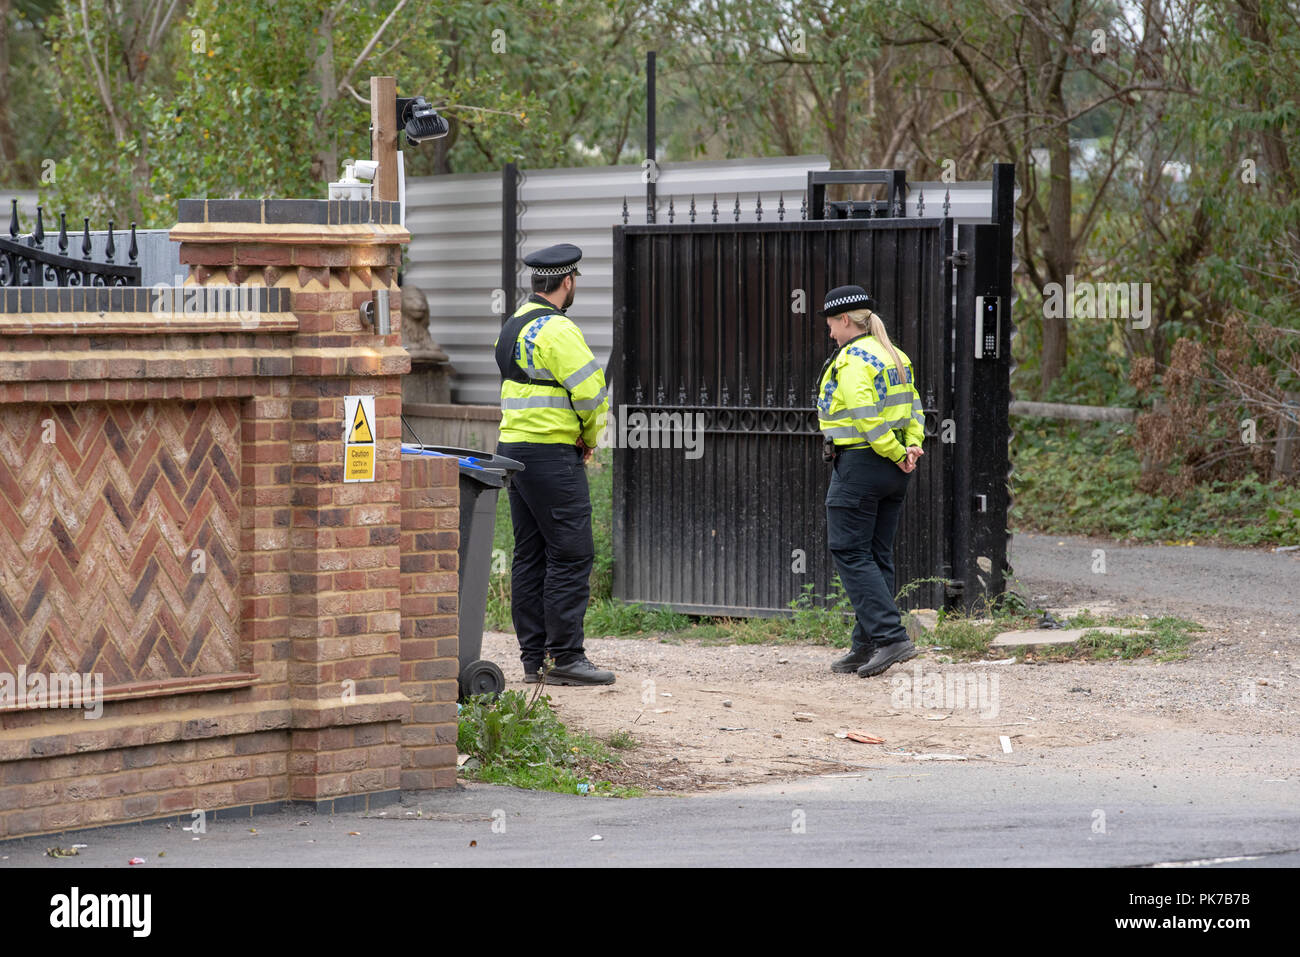 Iver, United Kingdom. 11 September 2018. Thames Valley Police has made three arrests following modern slavery warrants carried out in South Buckinghamshire. The arrests were made in connection with warrants carried out at a residential property in Love Lane, lver, South Buckinghamshire. Eight people, believed to be victims of modern slavery, were also safeguarded by the force. Approximately 100 officers were involved in the operation which took place following allegations made about forced labour being carried out at building sites. Credit: Peter Manning / Alamy Live News Stock Photo